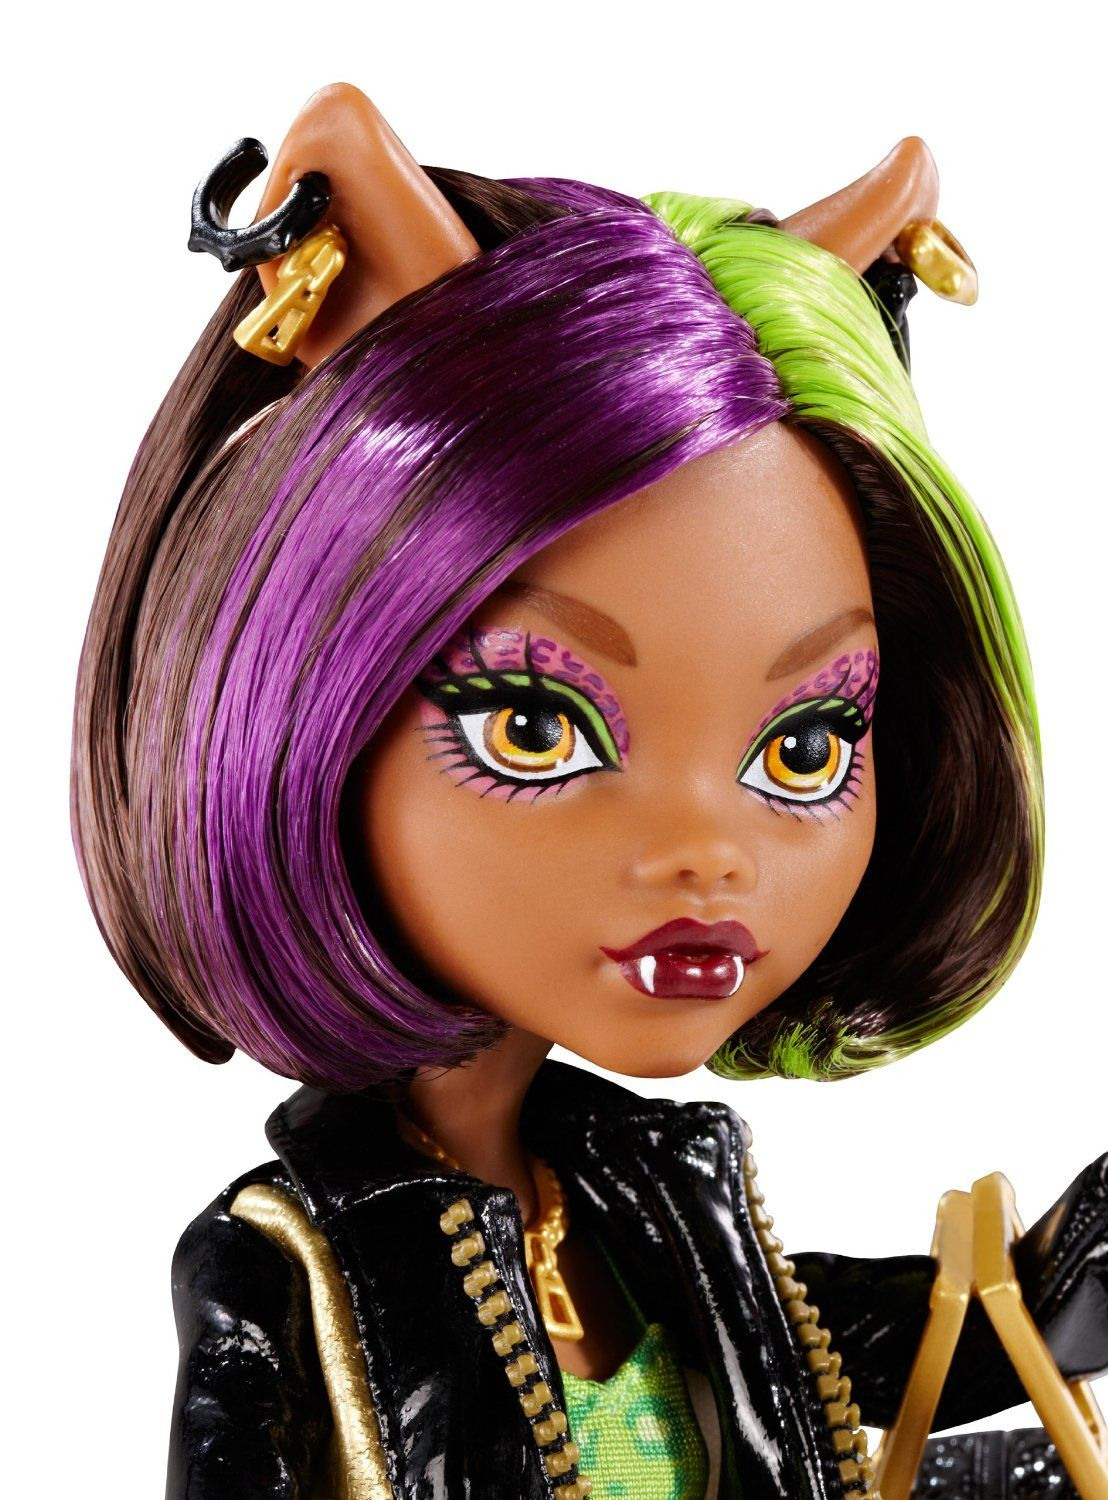 Amazon Com Monster High New Scaremester Clawdeen Wolf Fashion Doll Toys Games Monster High Monster High Toys Monster High Dolls